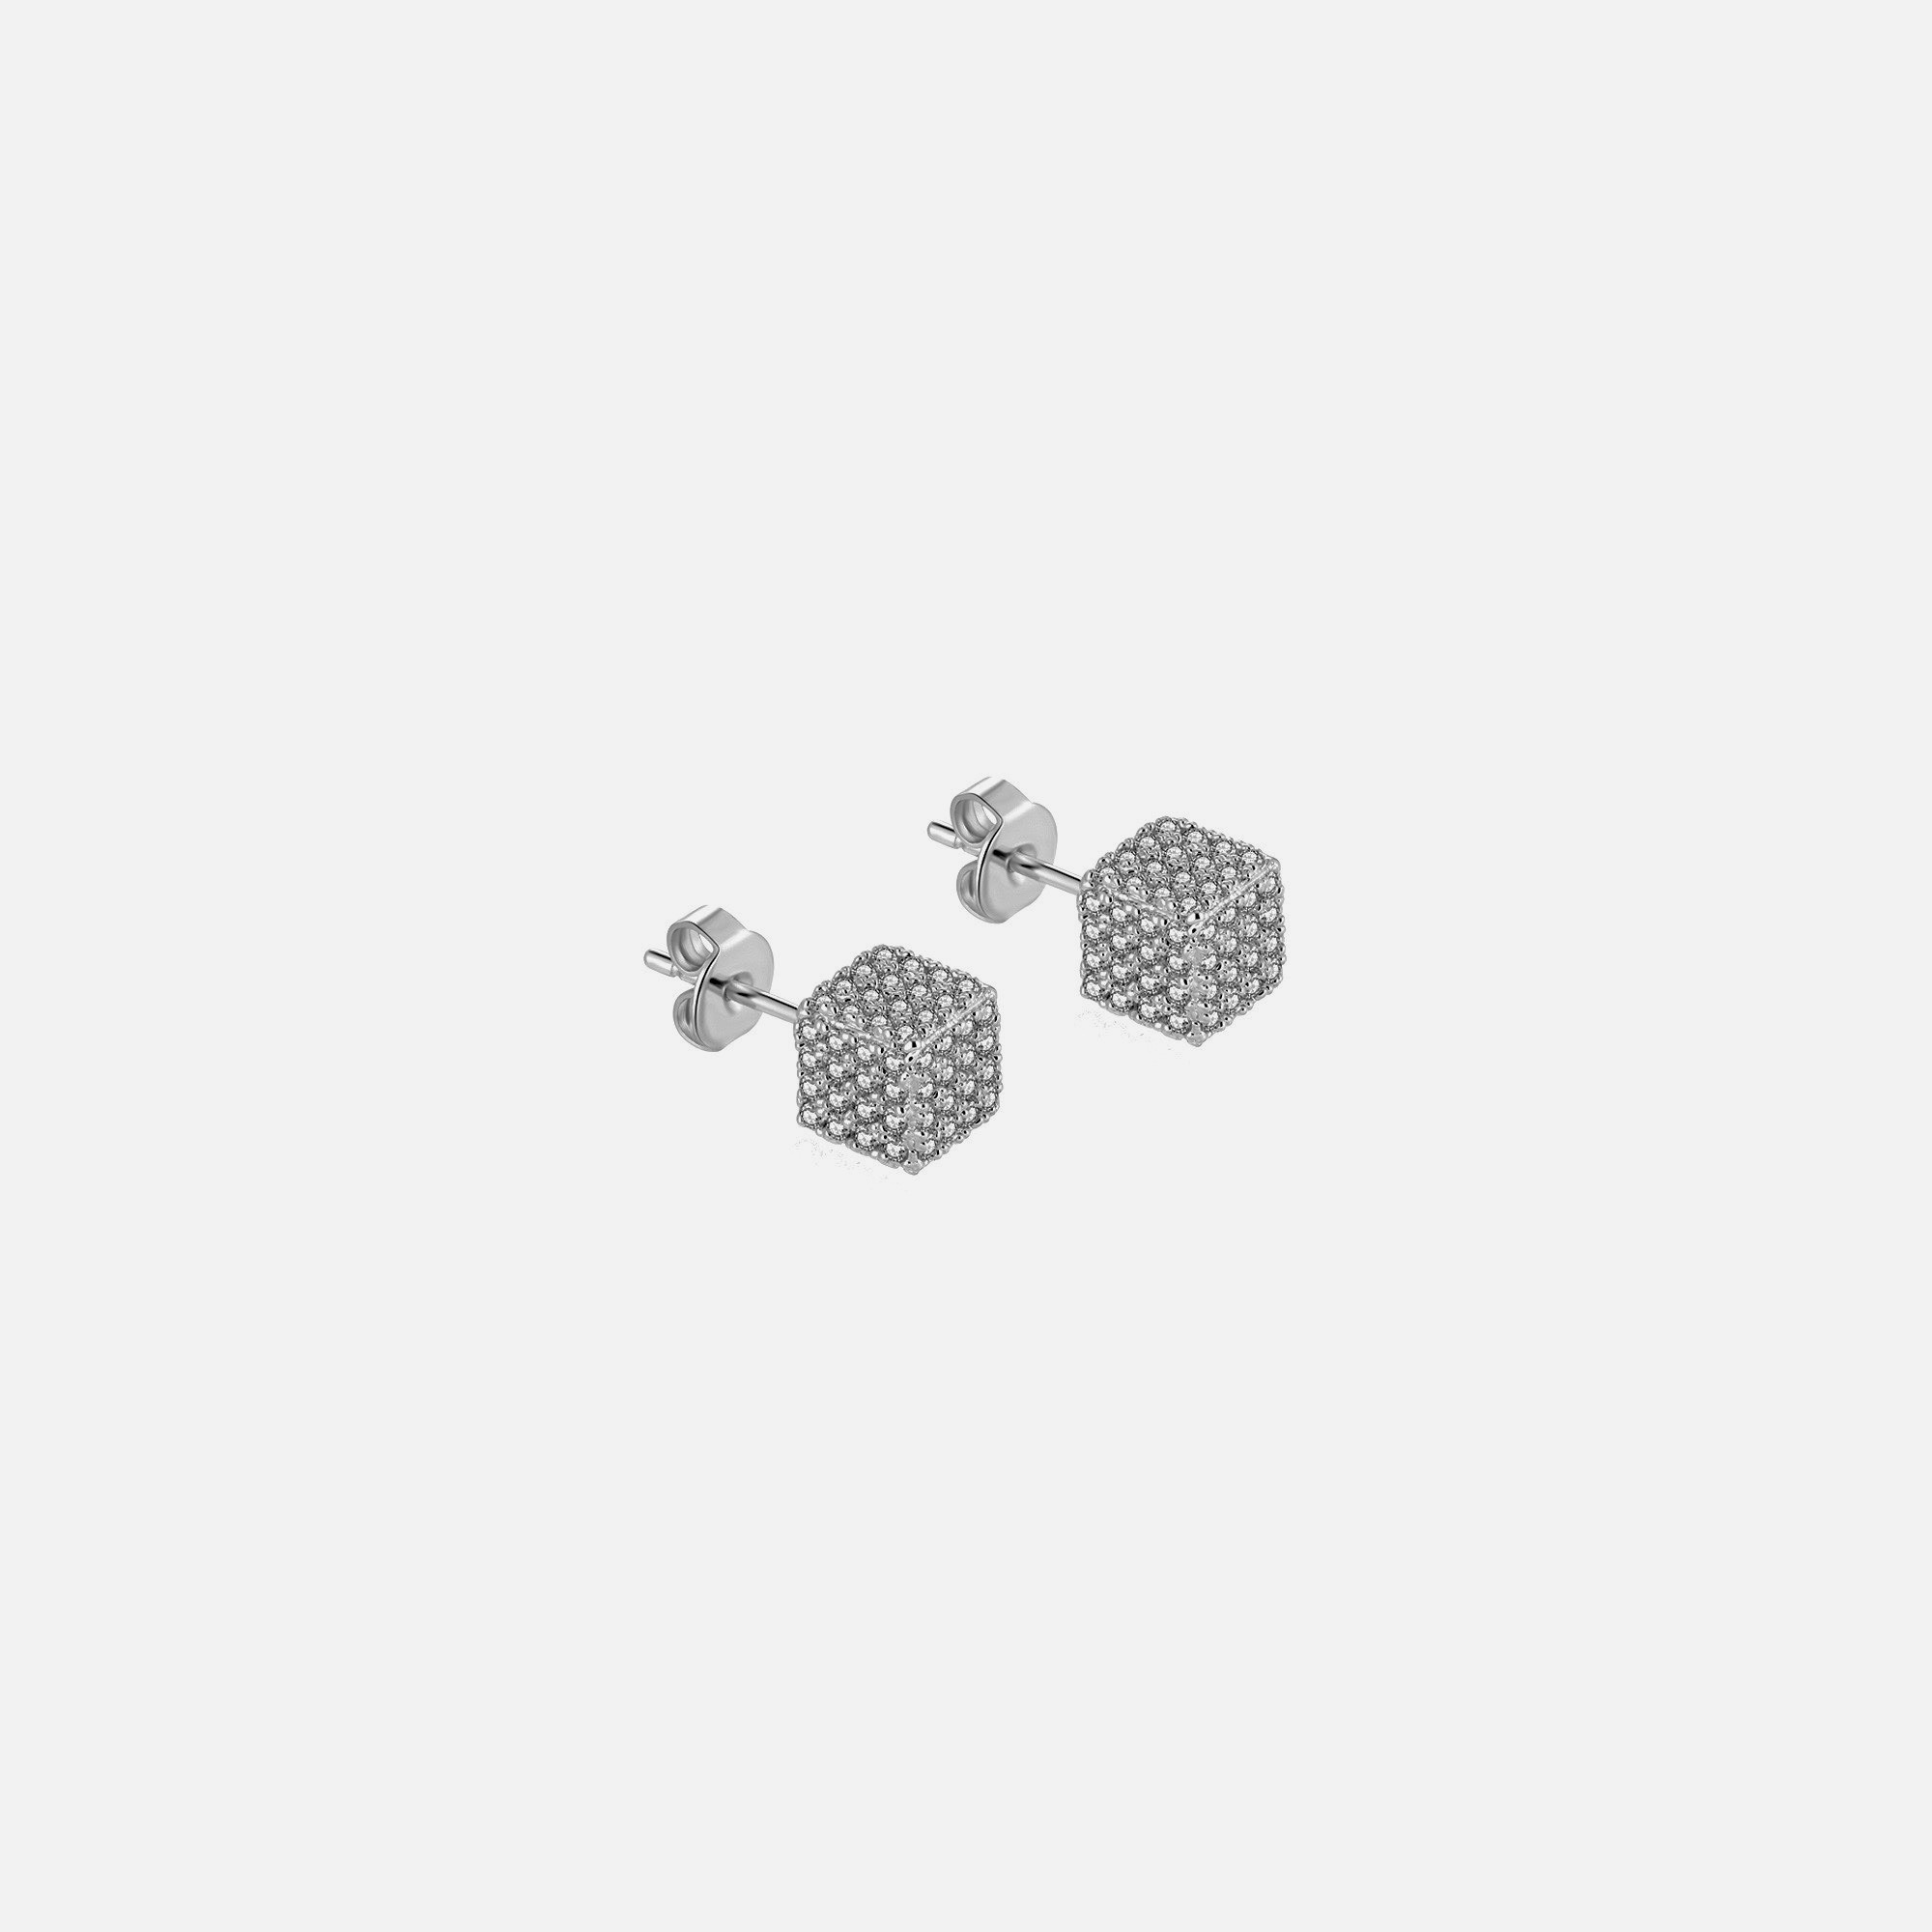 Cuby Earrings - Silver by Emili on curated-crowd.com